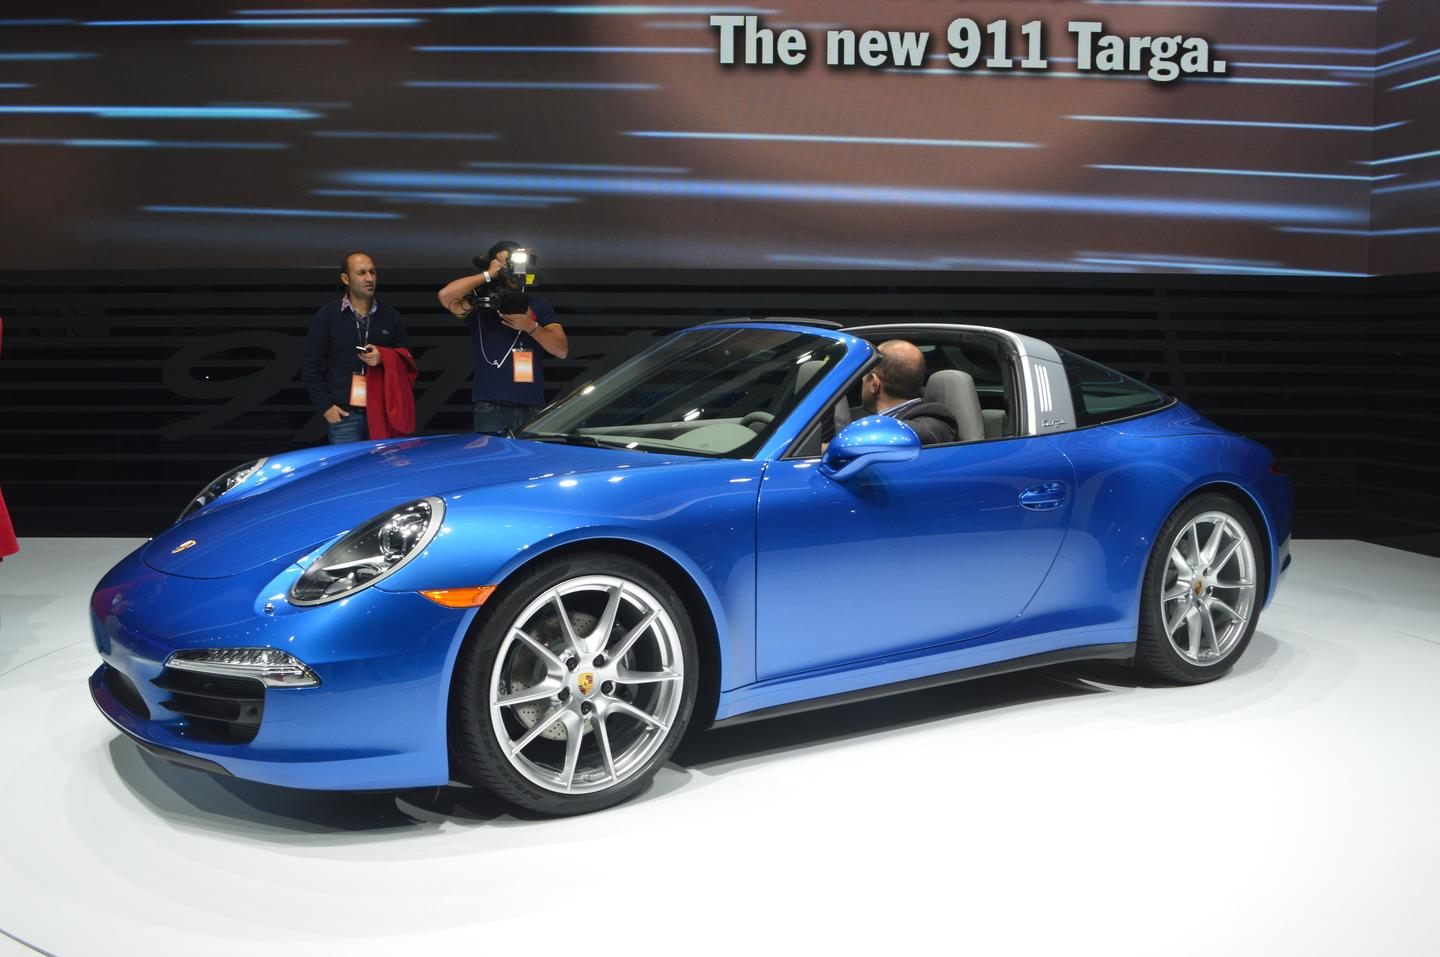 The Porsche 911 Targa goes on sale in May (Photo: Gizmag.com)